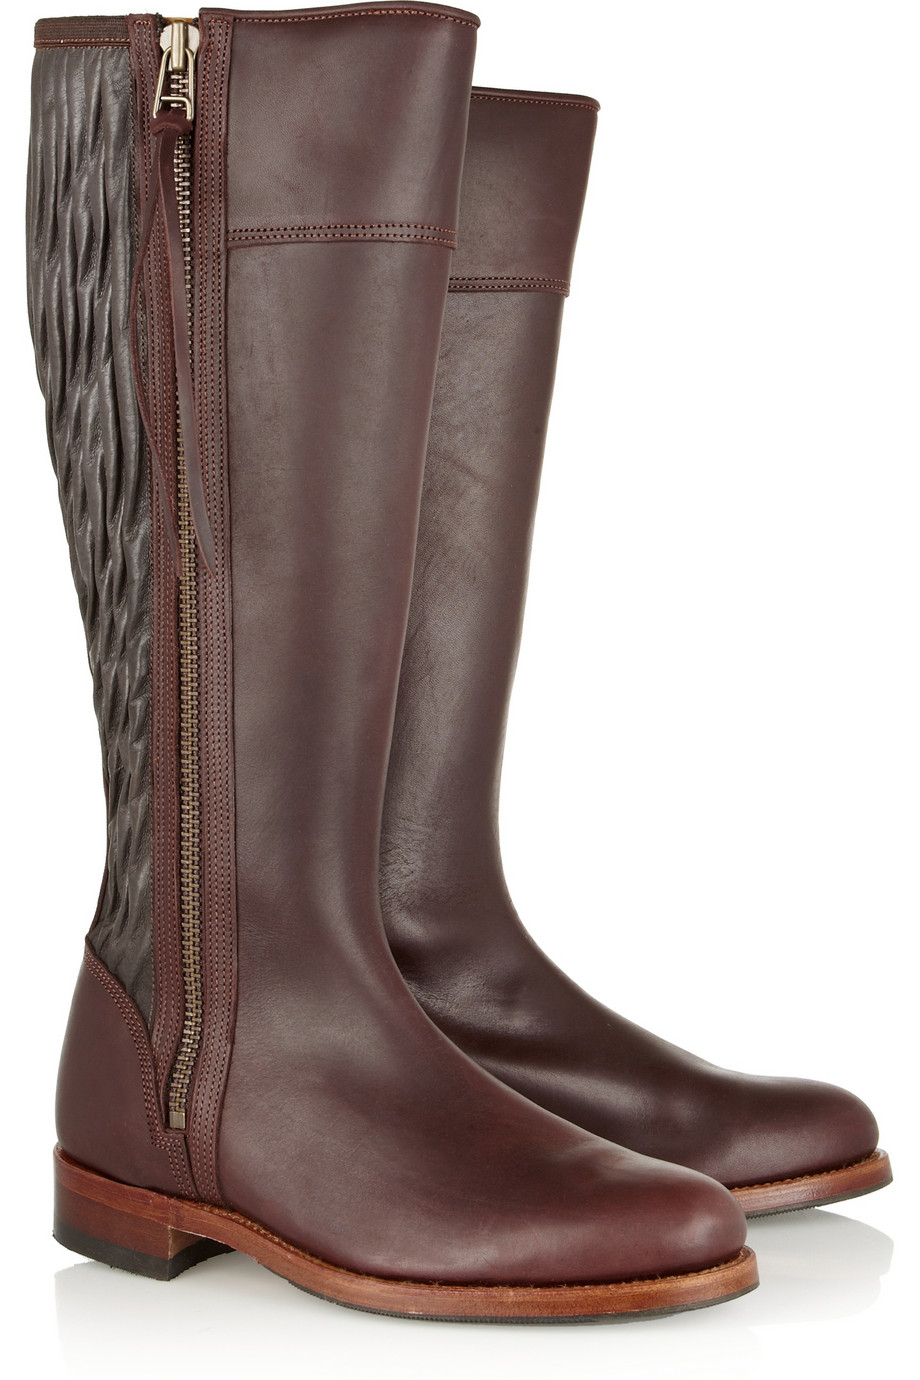 Penelope Chilvers Riding Boots In Brown Lyst